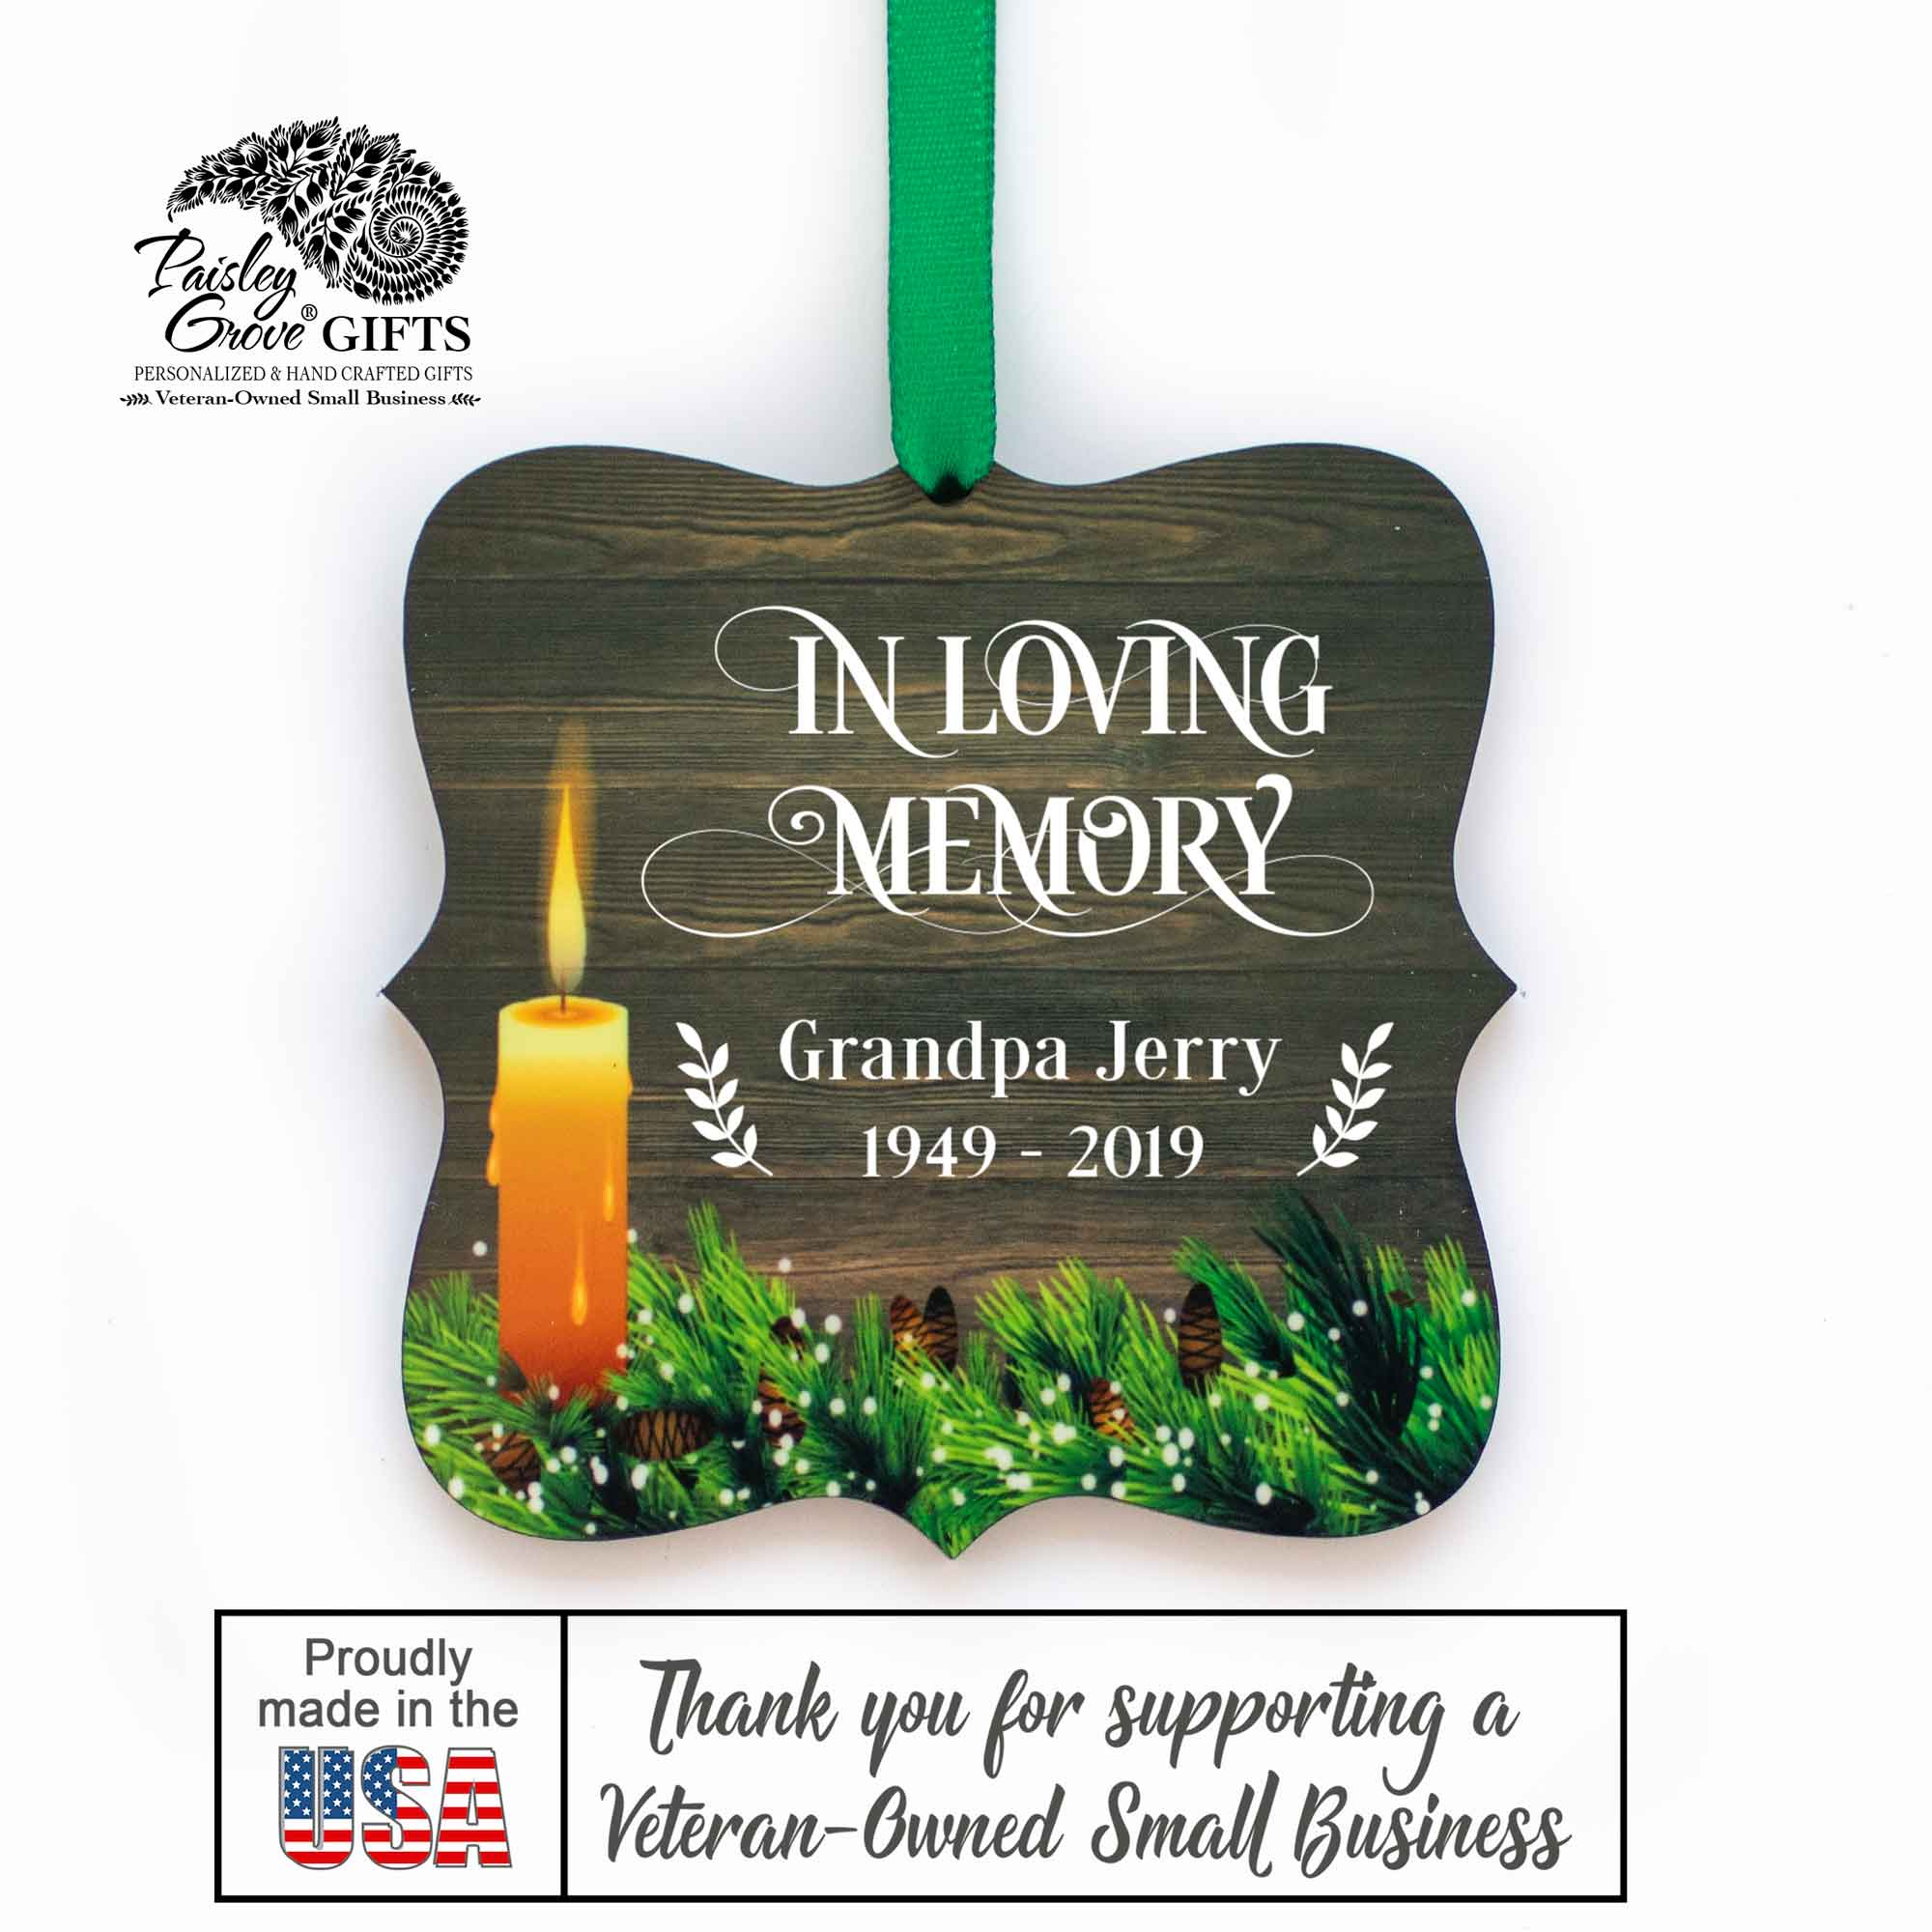 CopyrightPaisleyGroveGIFTS S508a2 In Loving Memory Customized Christmas Ornament Bereavement Gift Made in the USA